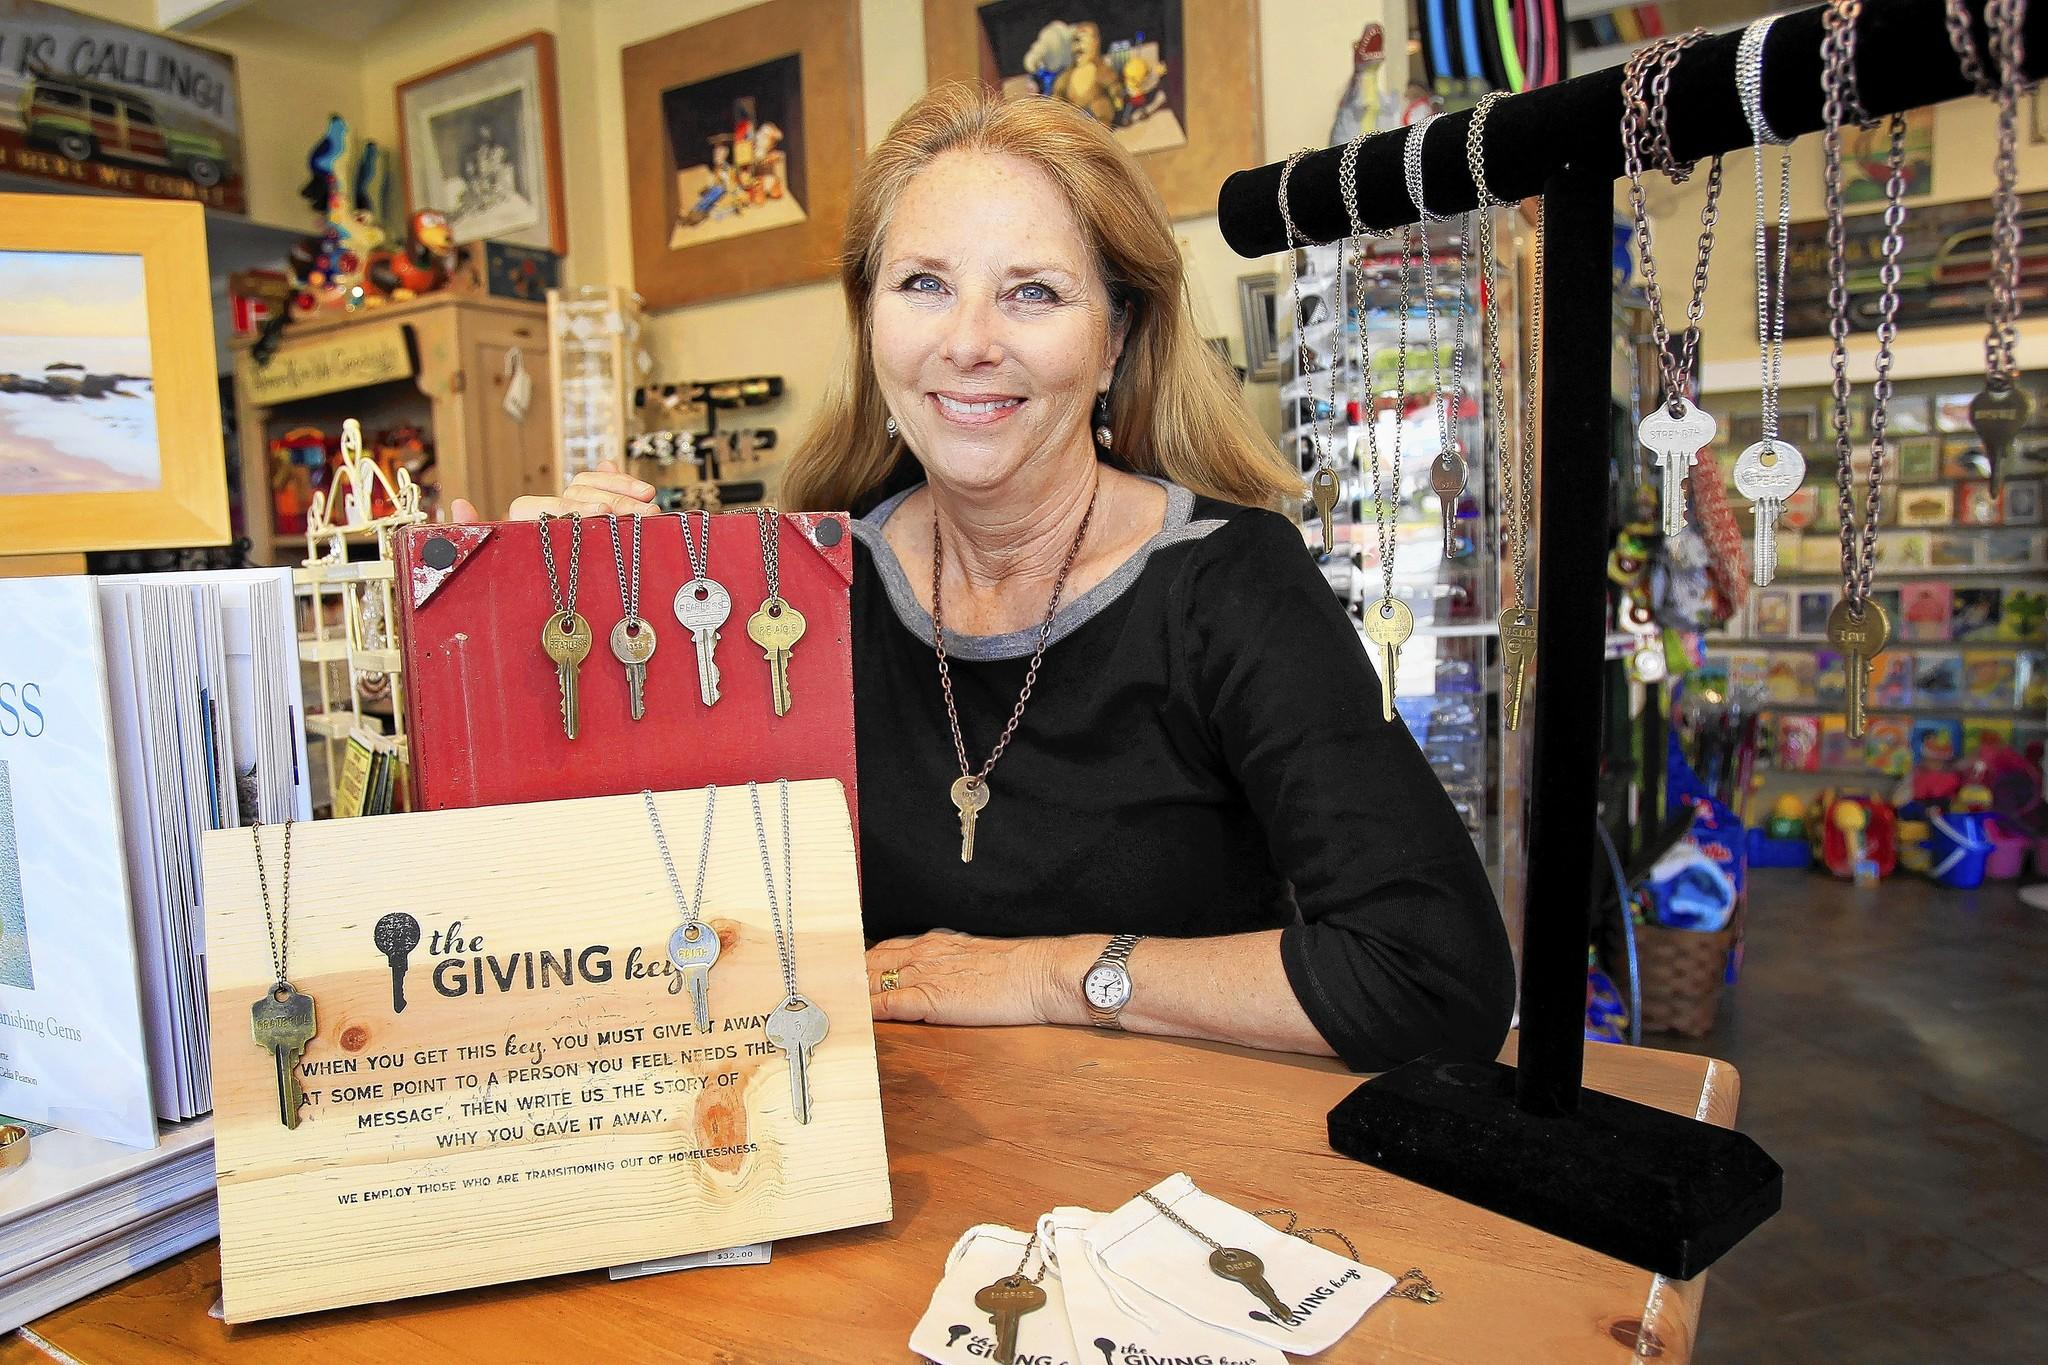 Owner Carol Robinson poses for a portrait at her Jasmine Street General Store in Laguna Beach. Jasmine Street General Store sells The Giving Keys, which hires people who are transitioning out of homelessness and trains them to create jewelry from repurposed keys. The Giving Keys is a Los Angeles-based company represented at retailers across the country.